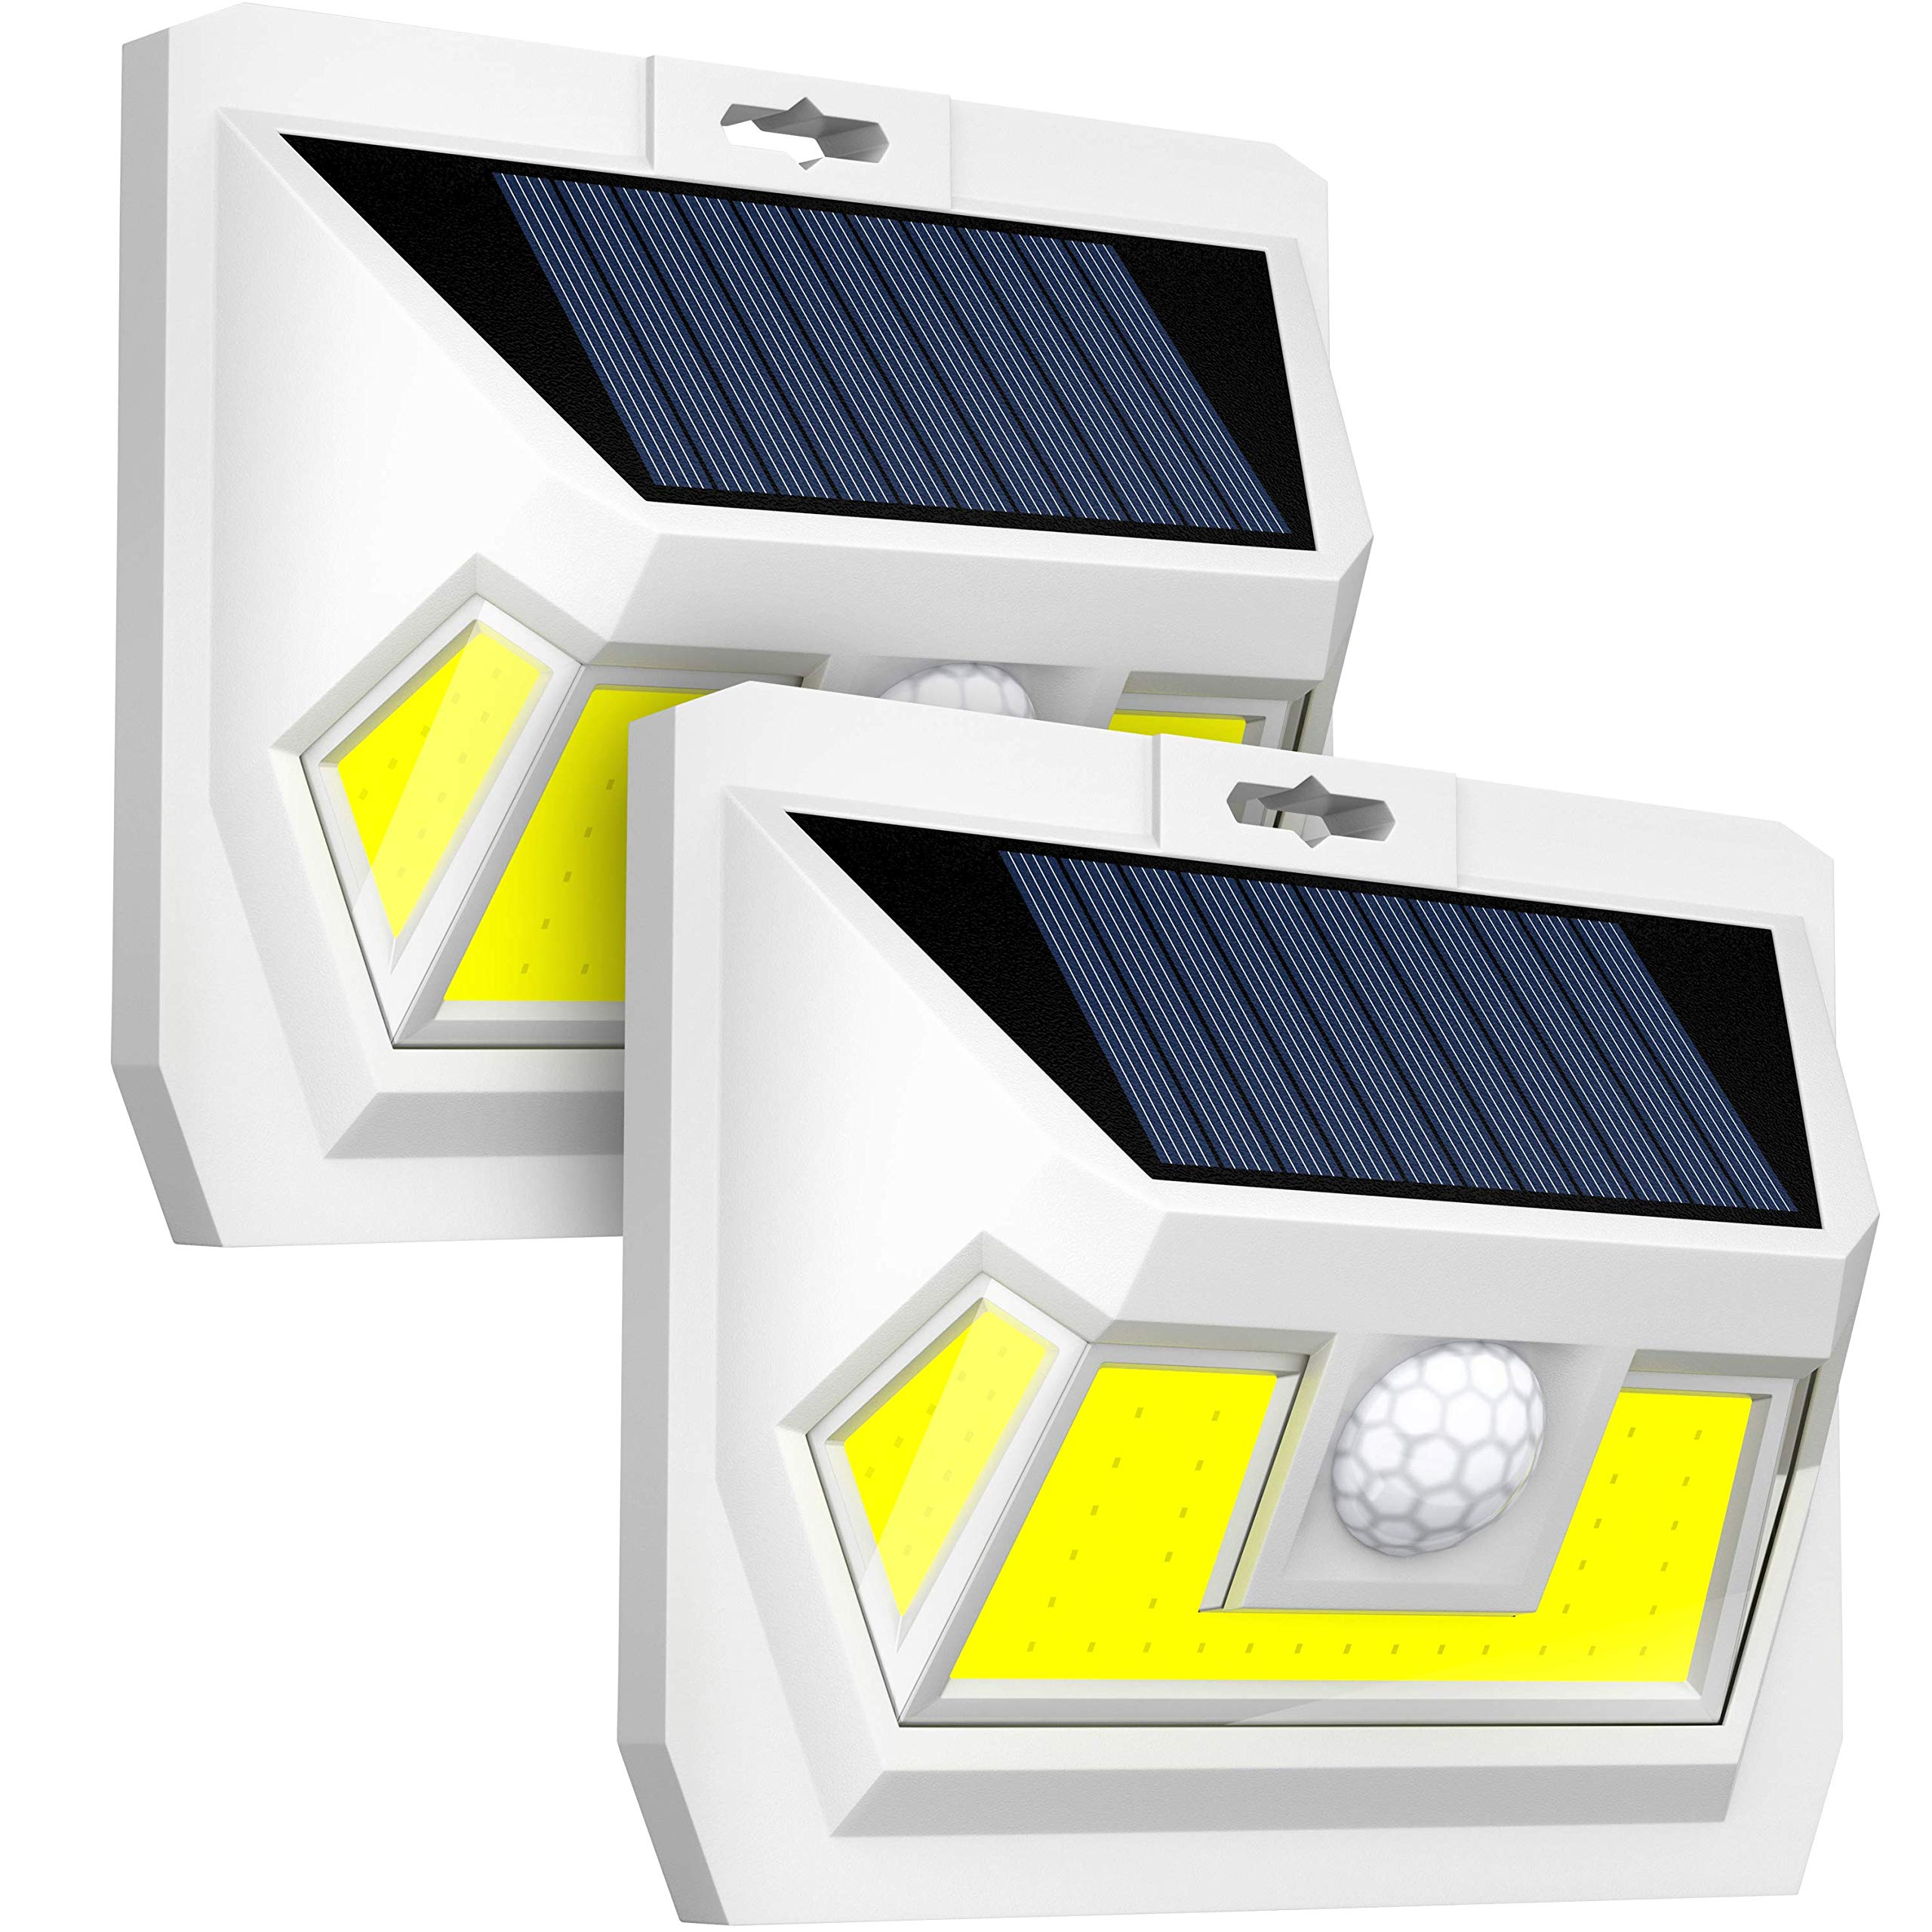 Ludius Solar Motion Sensor Light Outdoor-2 Generation Security Light-Upgraded Motion Detector-Very Bright-54 LEDs-270° Wide Light Angle-Waterproof-Wireless-Easy to Install Led Solar Lights Outdoor